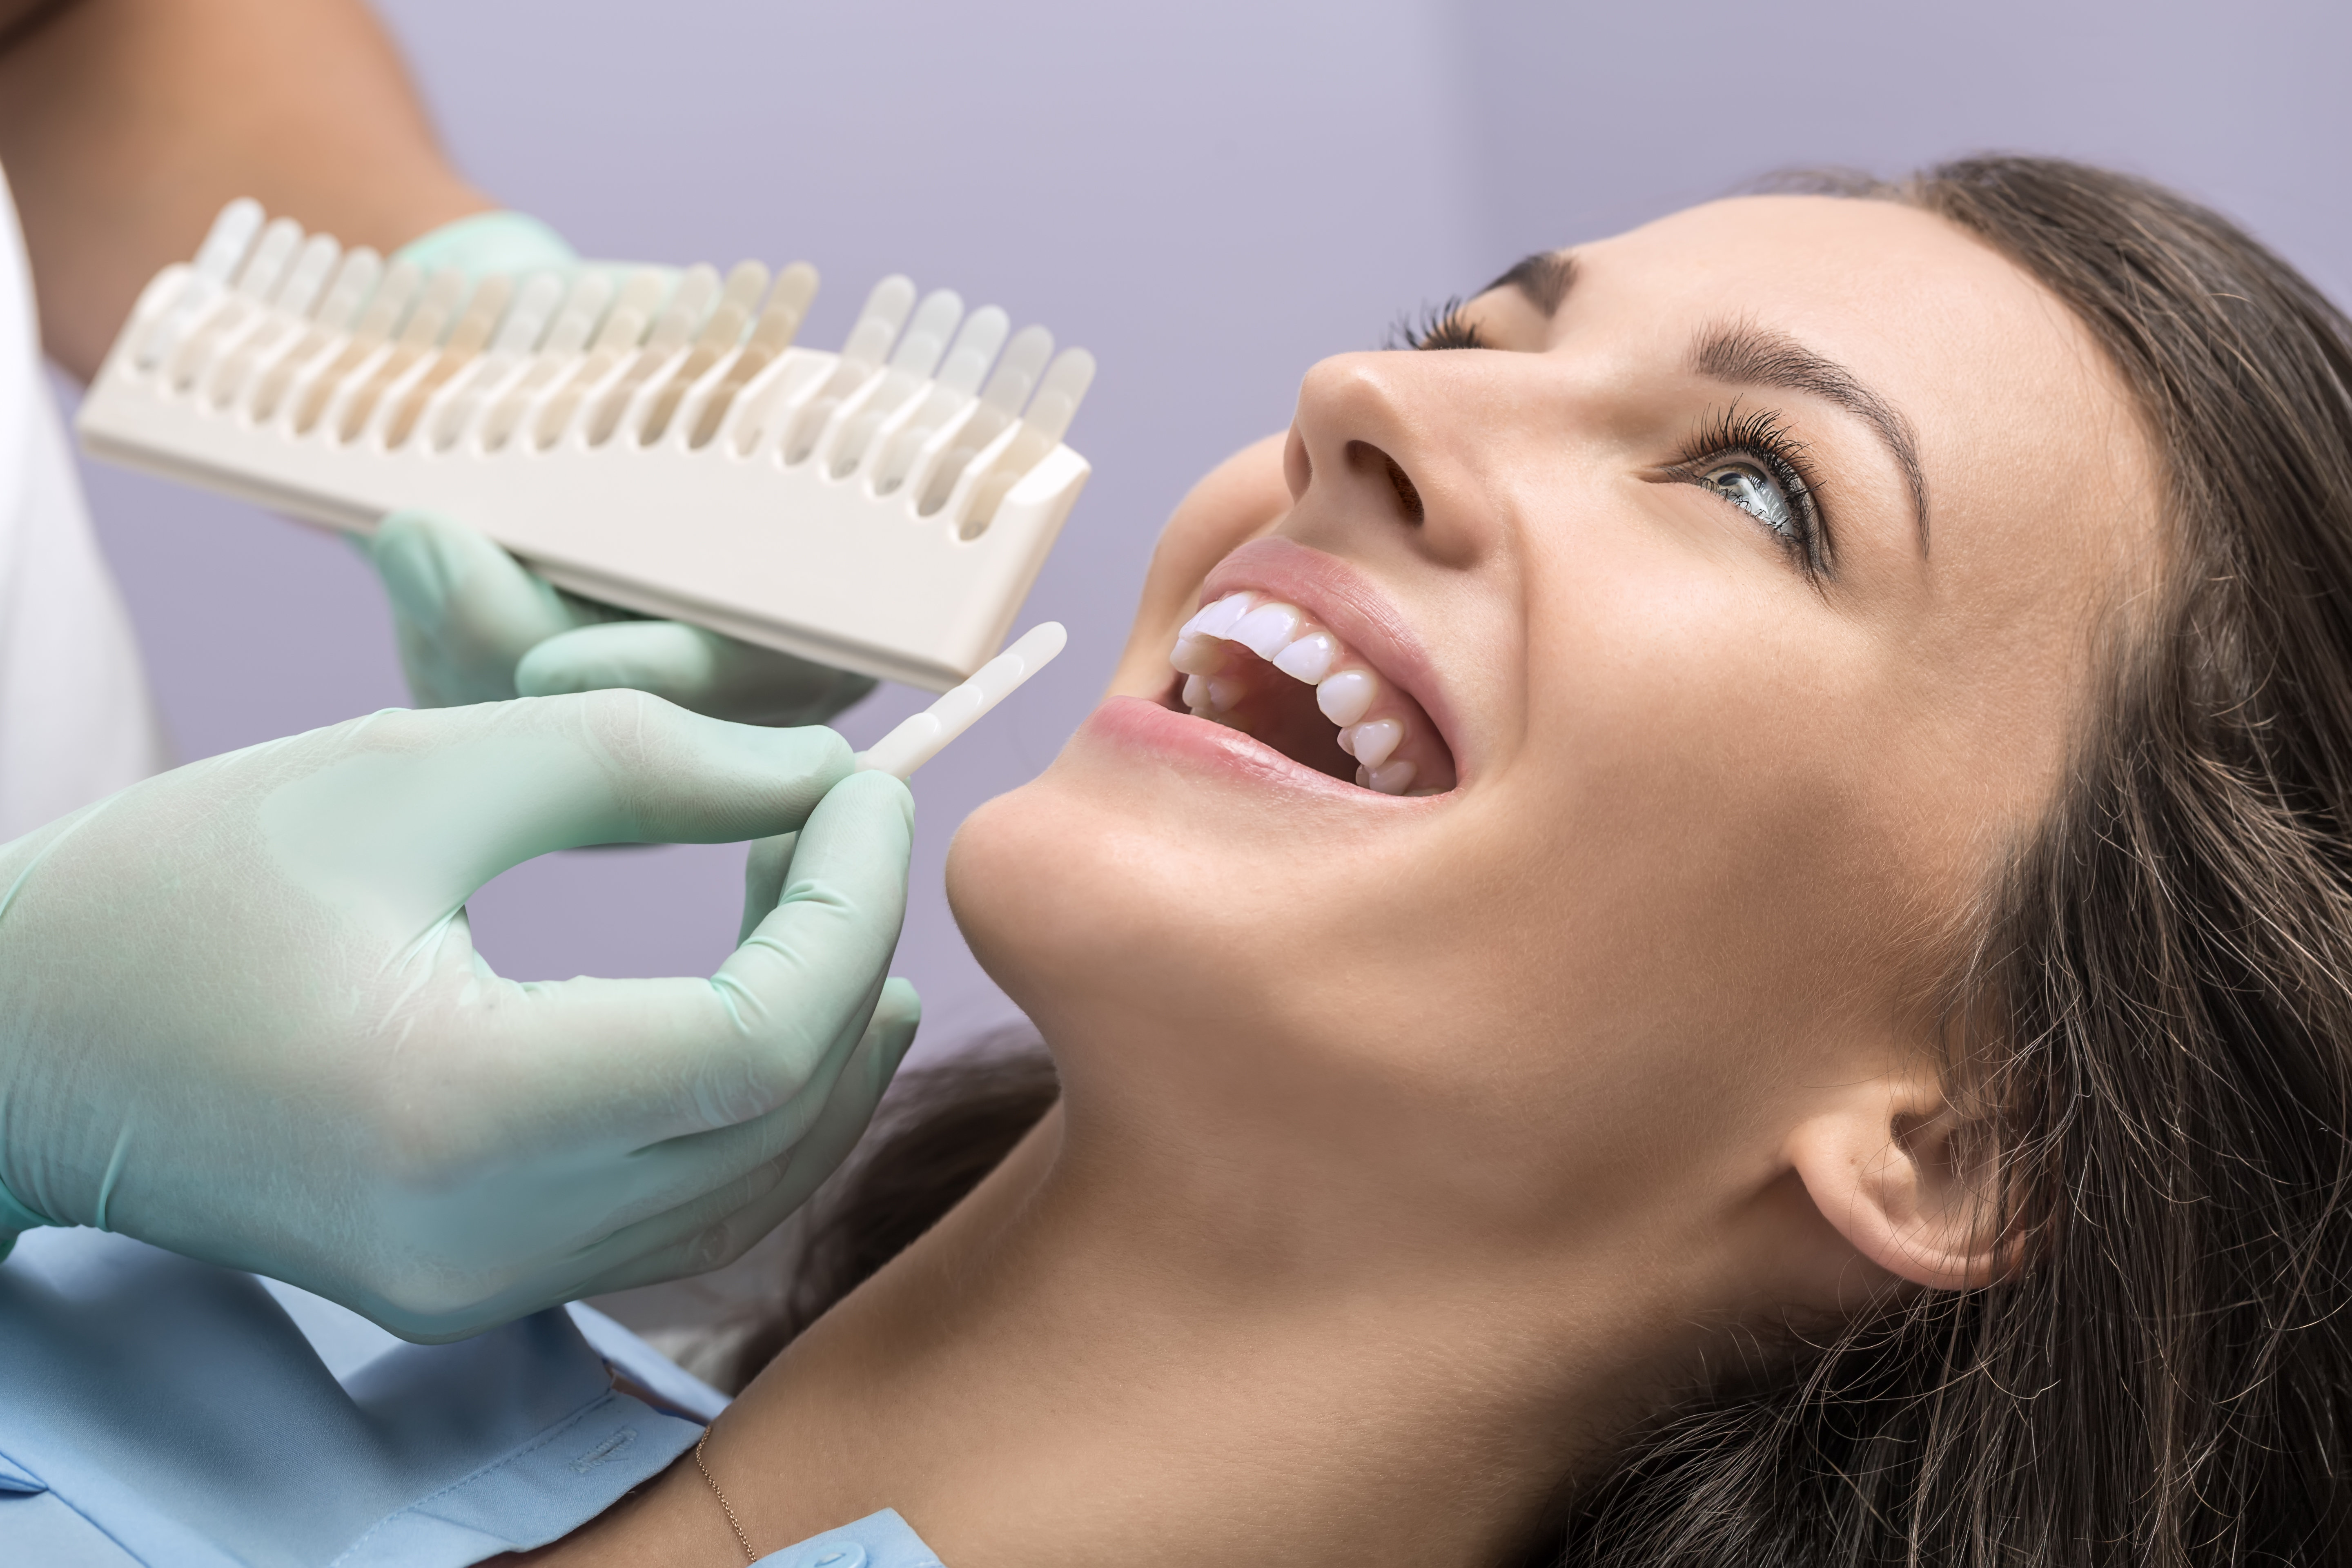 The dentist and the assistant whiten the teeth without peroxidizing in the ArtDent Dentistry Clinic. Using tooth whitening more shade of white colour can be achieved without damaging the teeth. The result is guaranted.